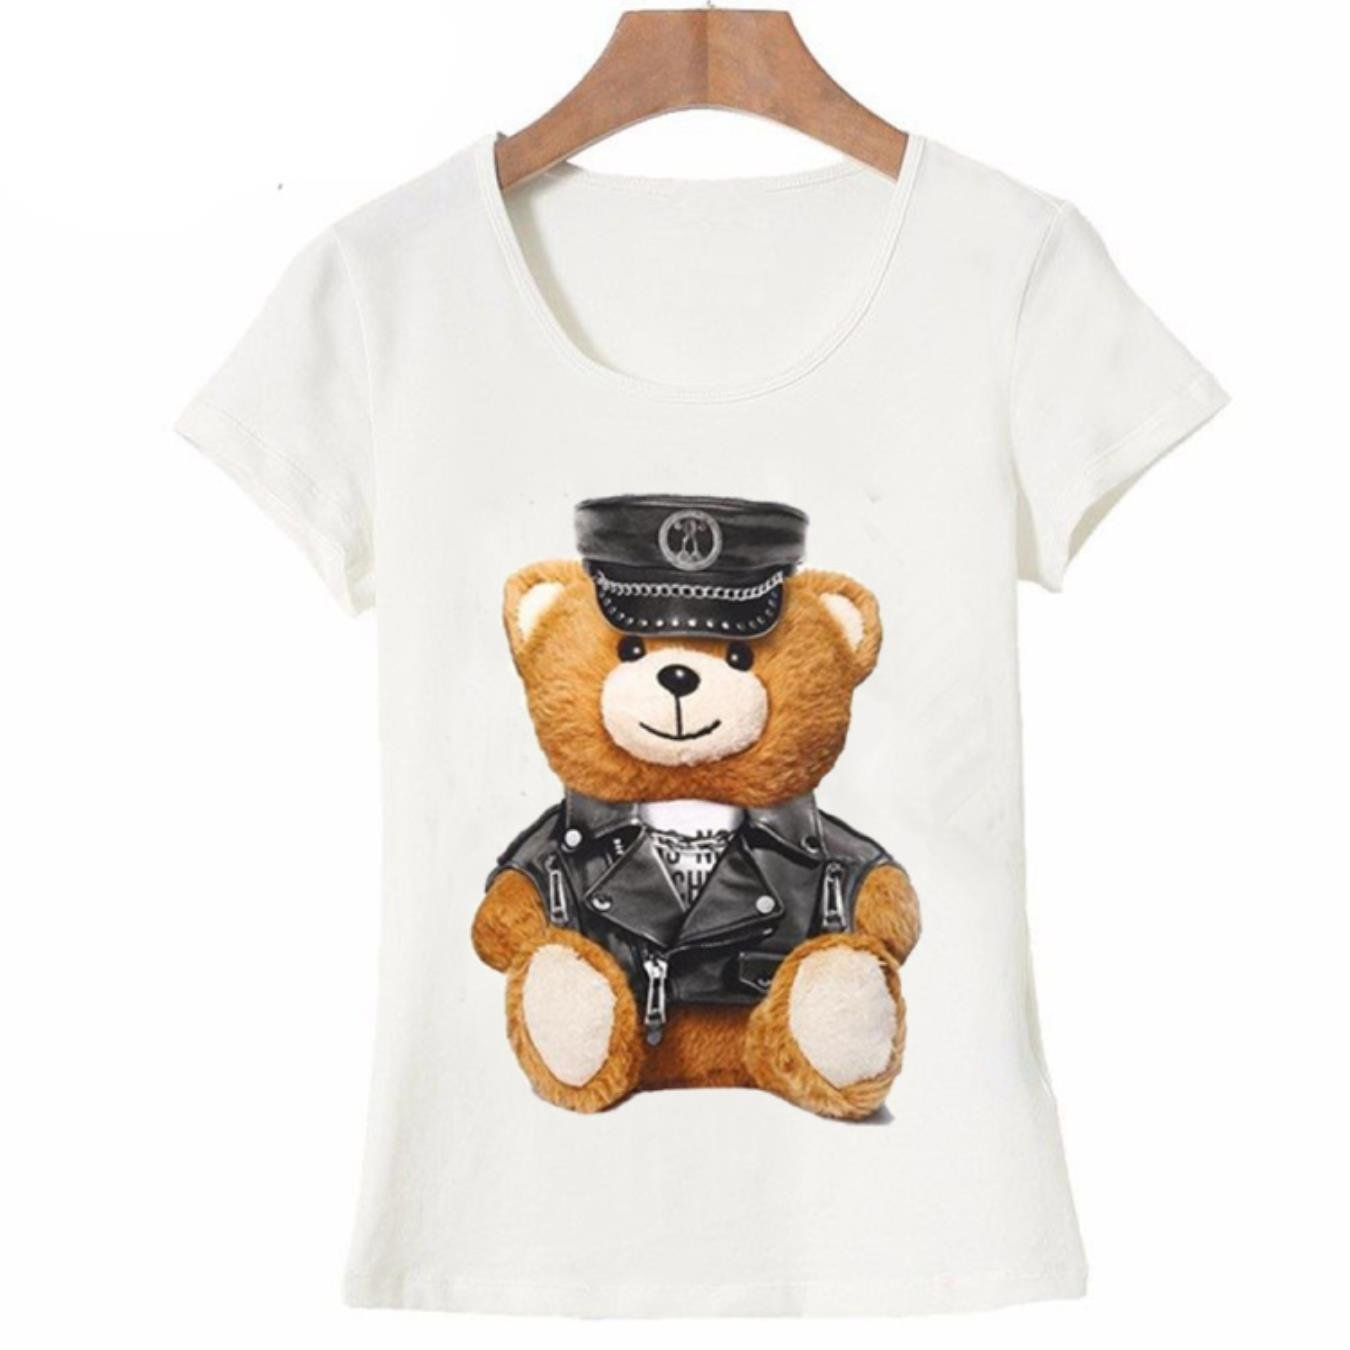 New summer fashion Women39;s short sleeve super cute vogue Police bear Teddy T-shirt white tops cool hipster tees